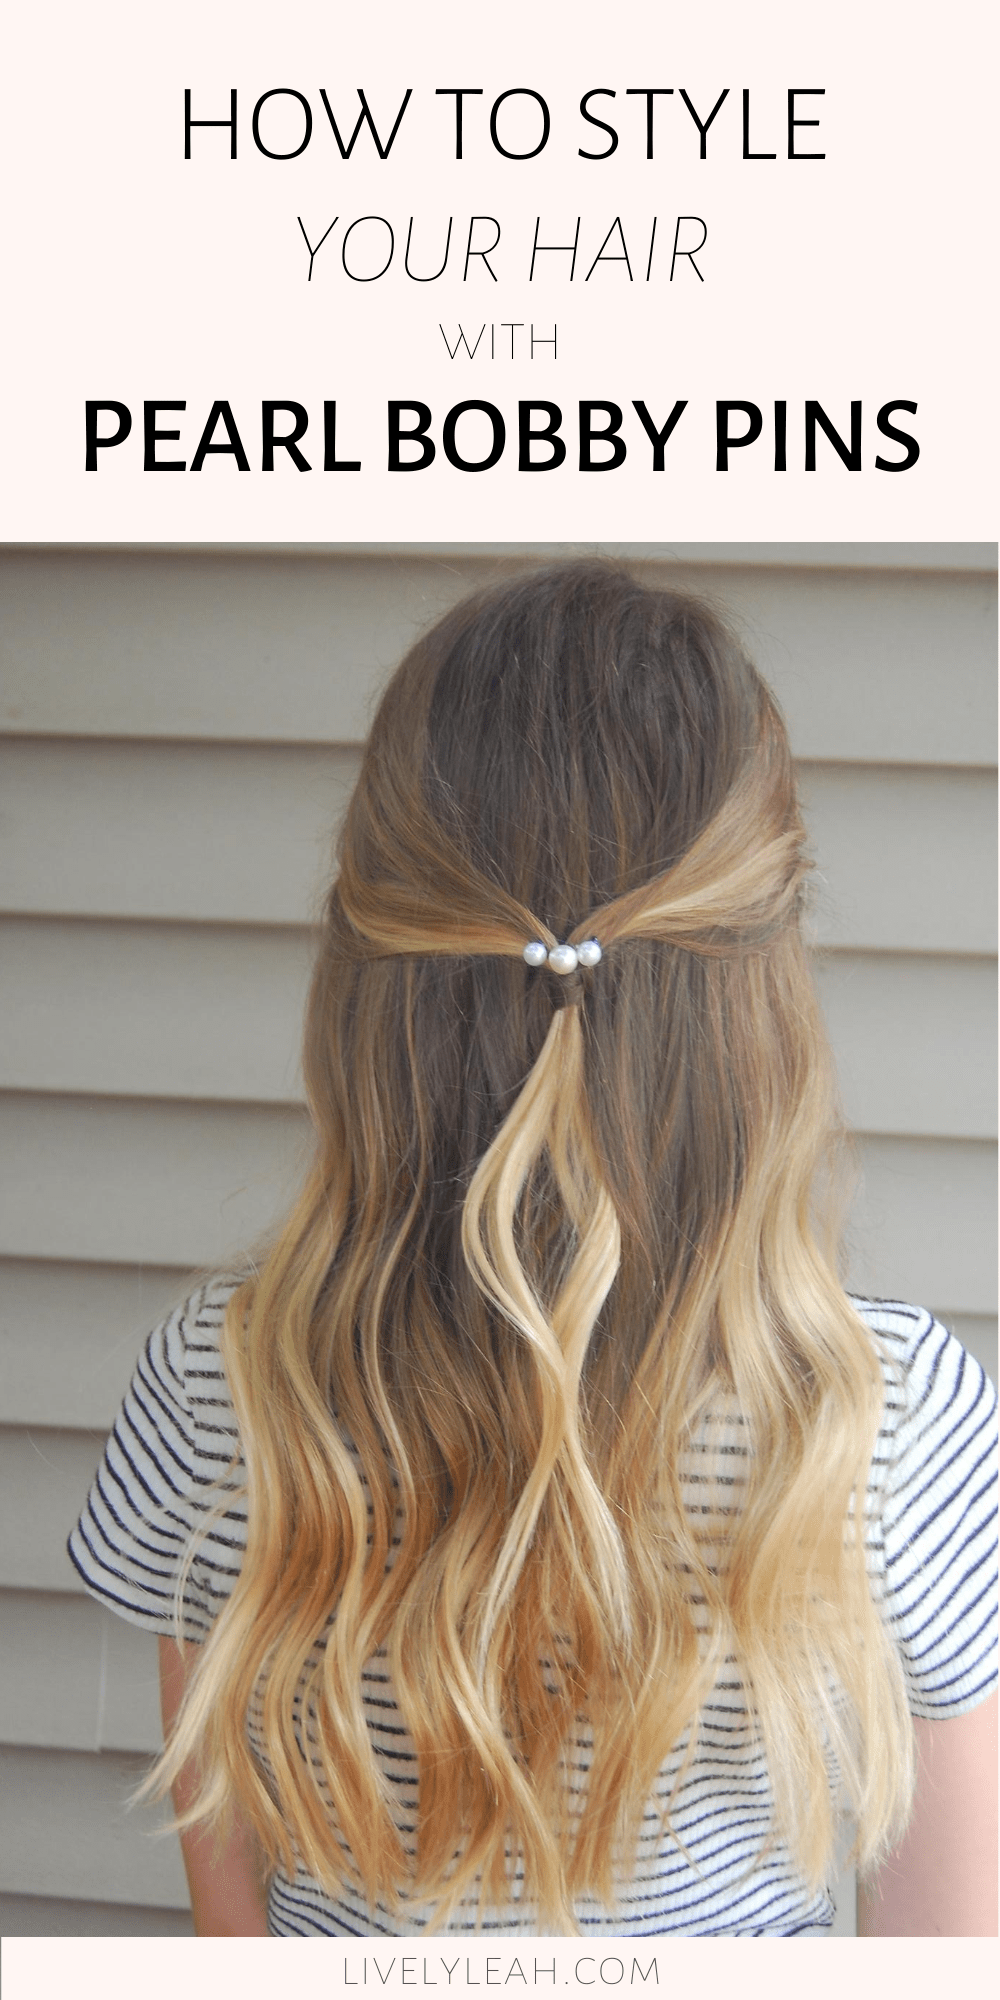 How To Style Your Hair With Pearl Bobby Pins